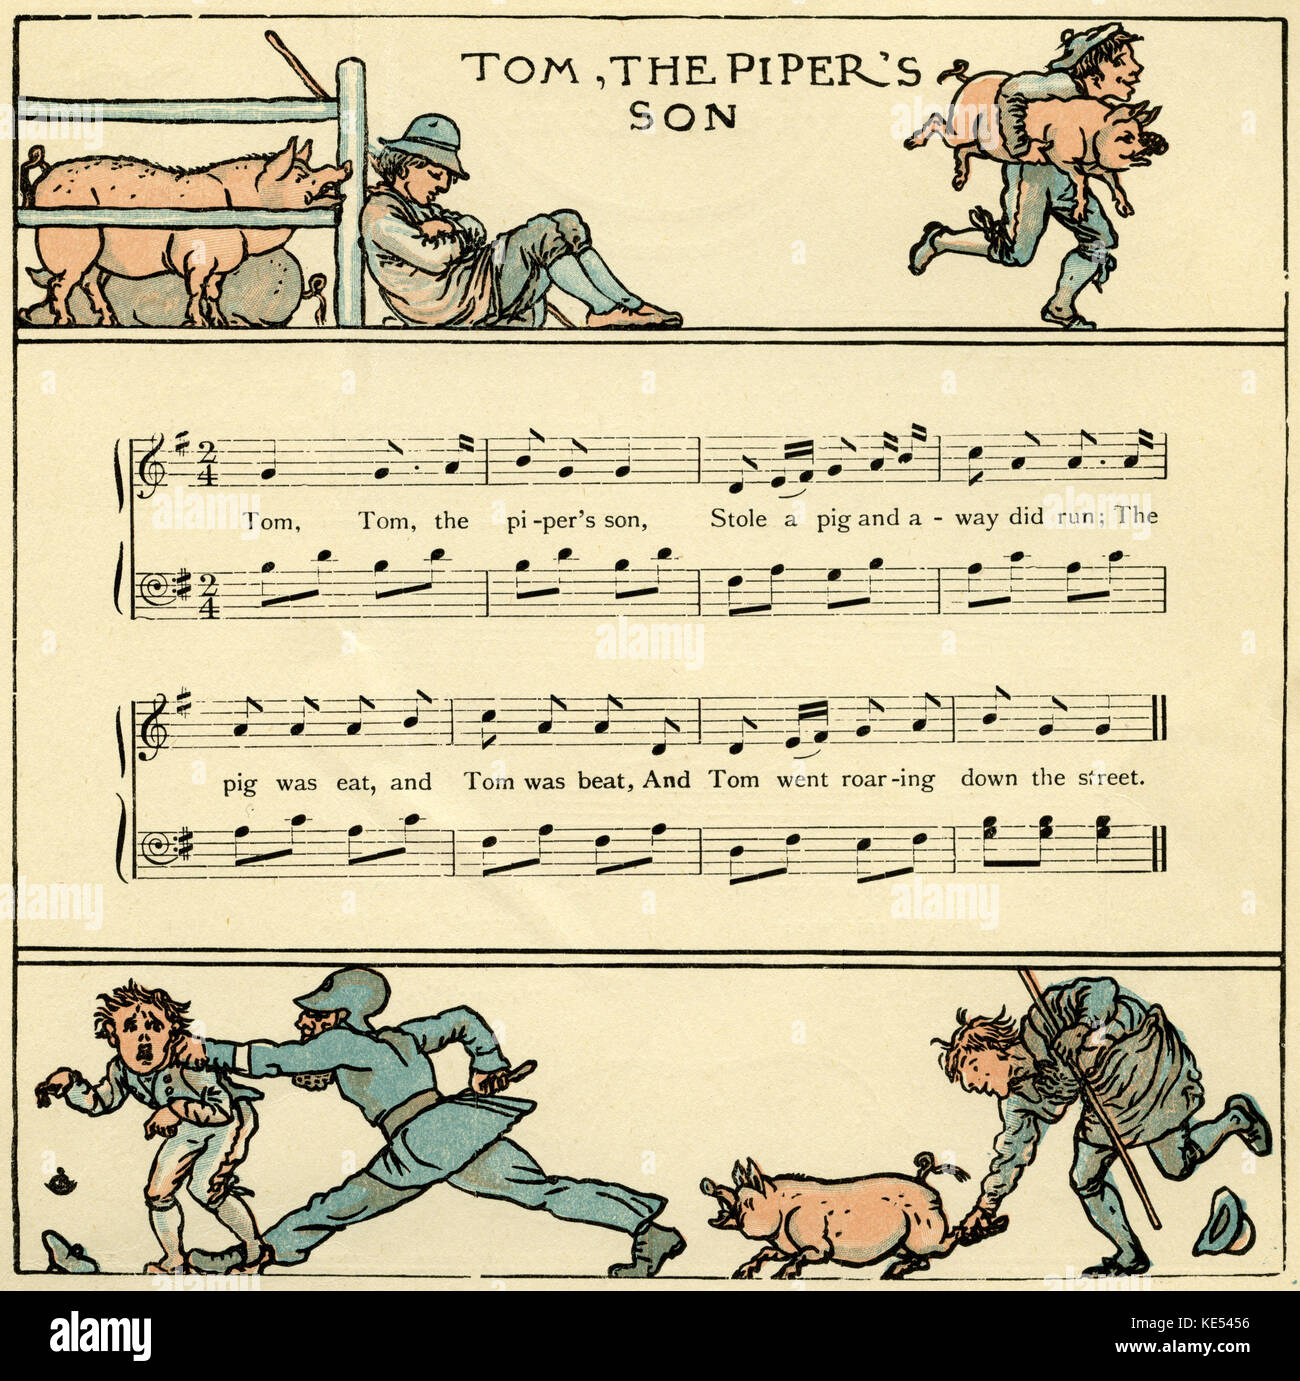 Tom, the piper's son, nursery rhyme score, illustration (1877) by Walter Crane. English artist of Arts and Crafts - Stock Image